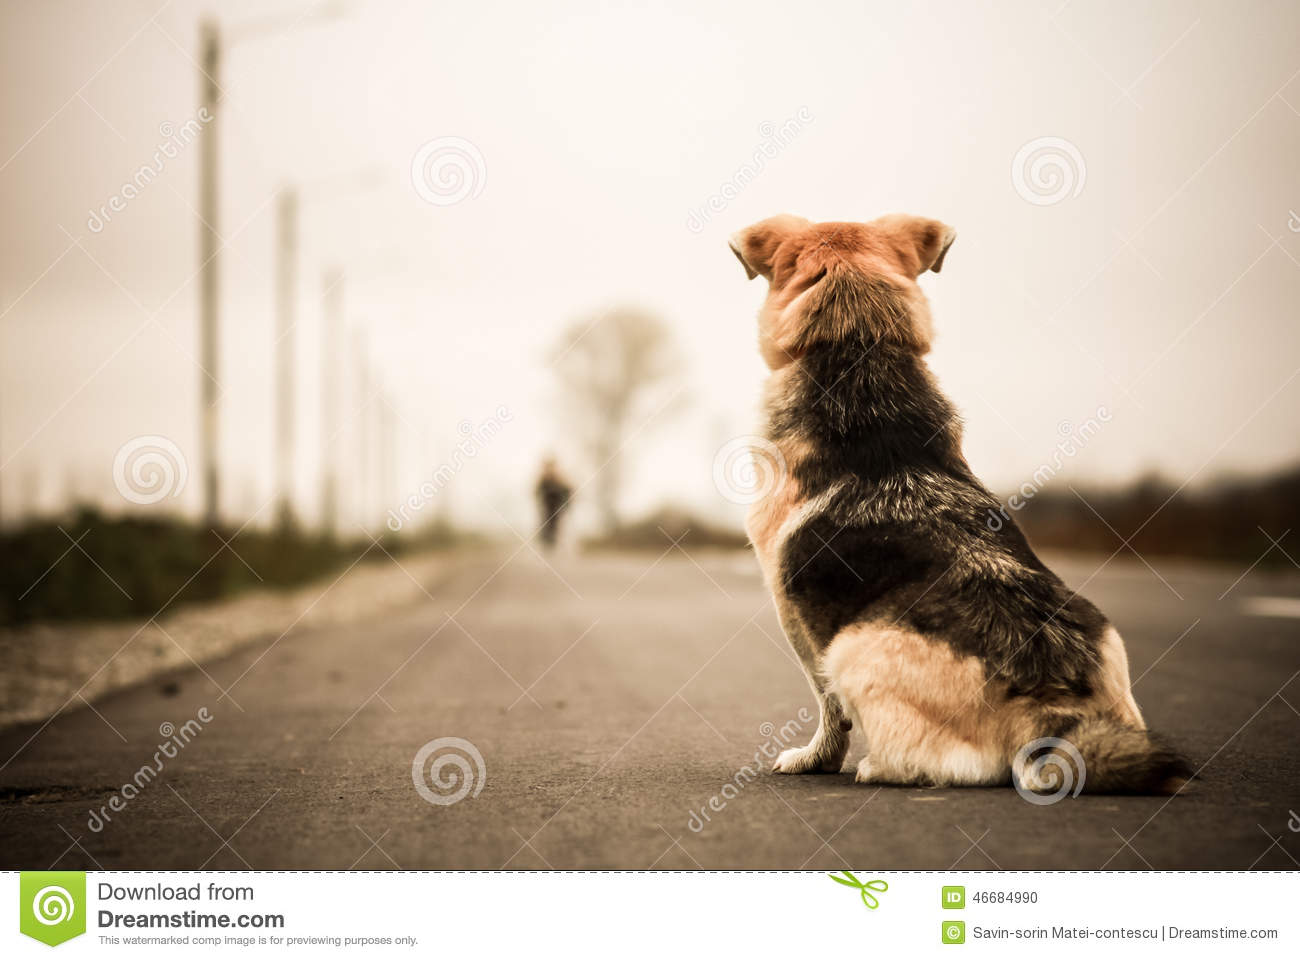 Dog Waiting In The Street Stock Photo - Image: 46684990